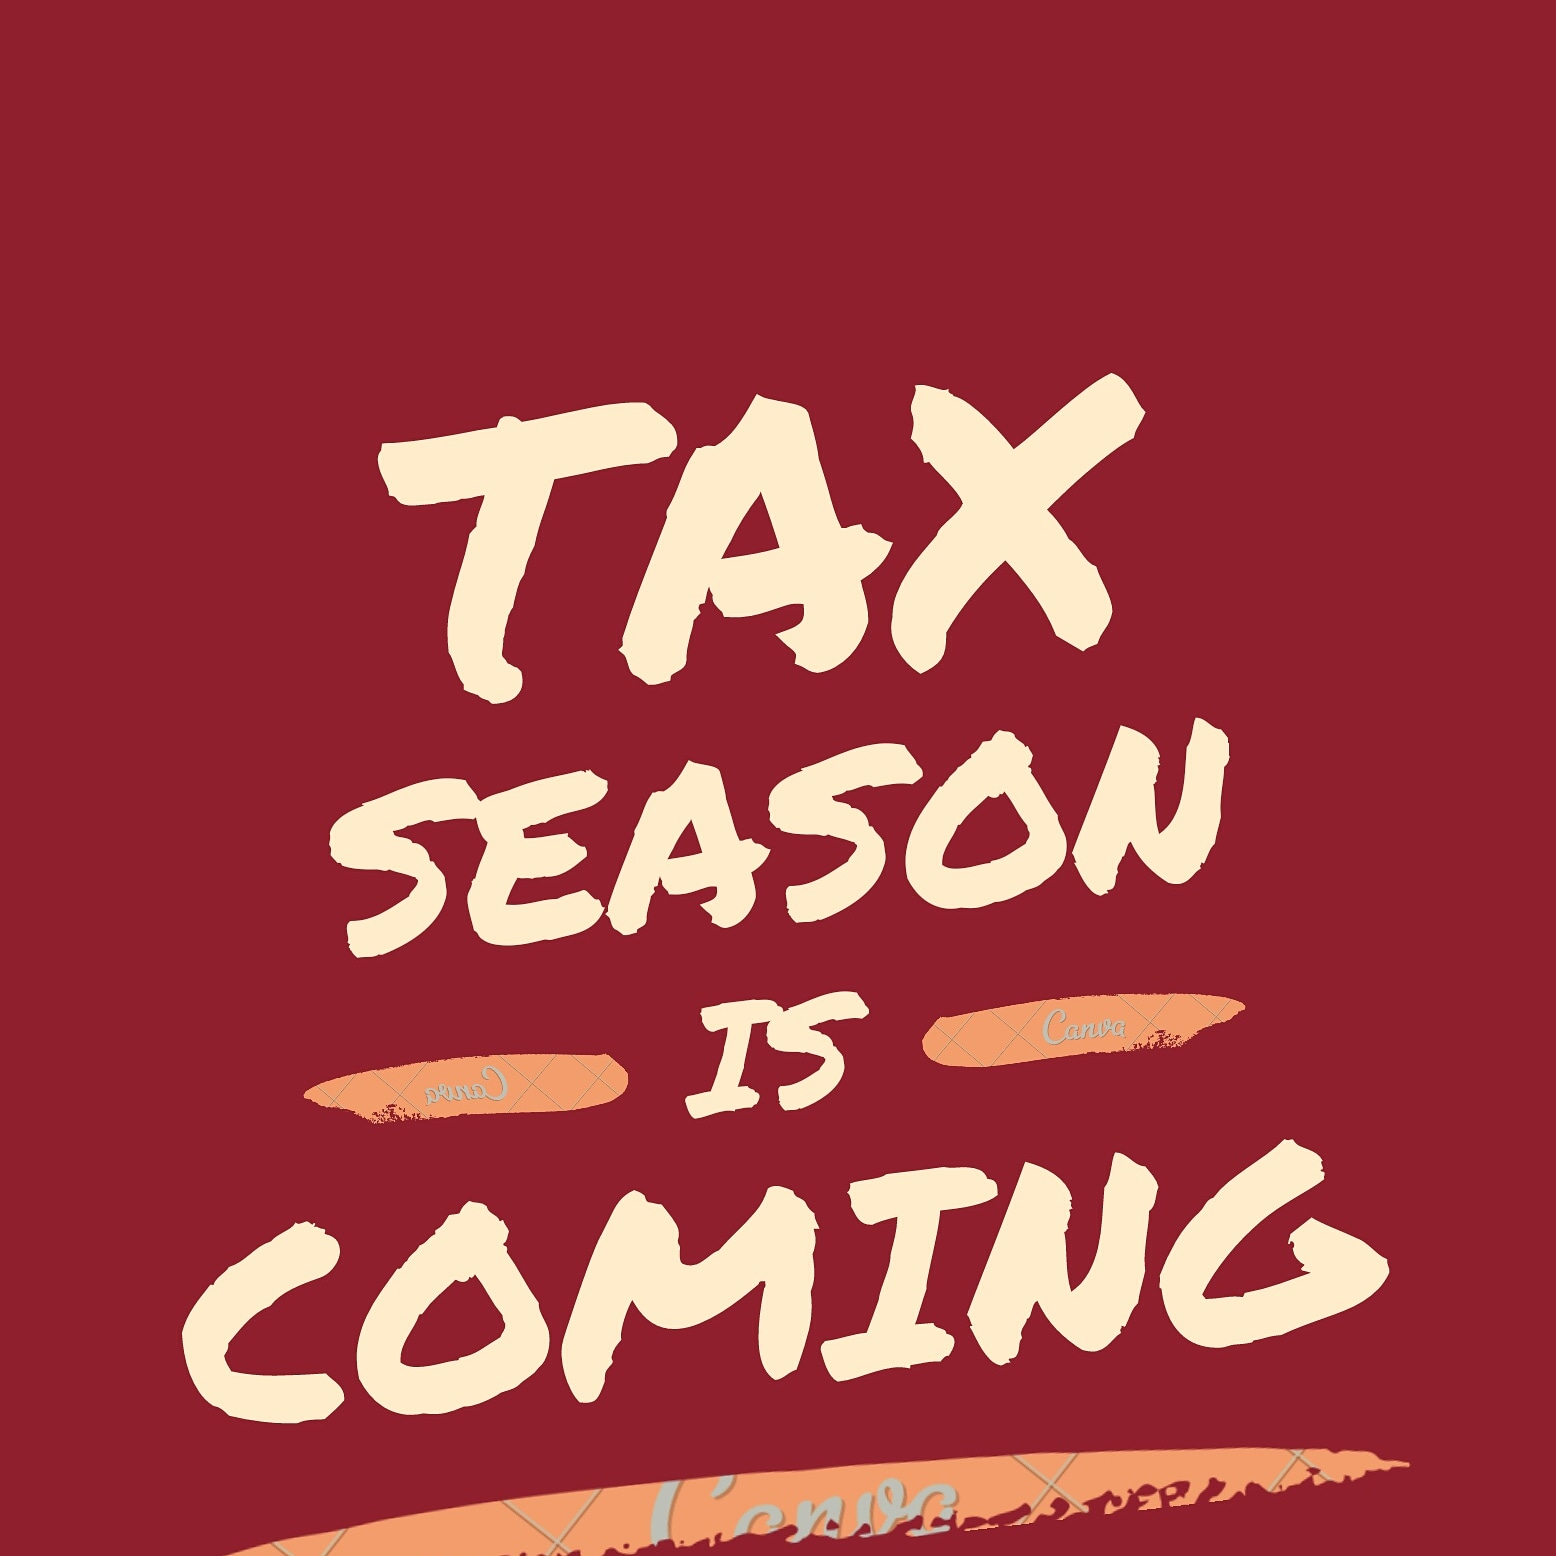 i-will-prepare-tax-returns-and-let-your-tax-refund-get-into-your-bank-account-safely